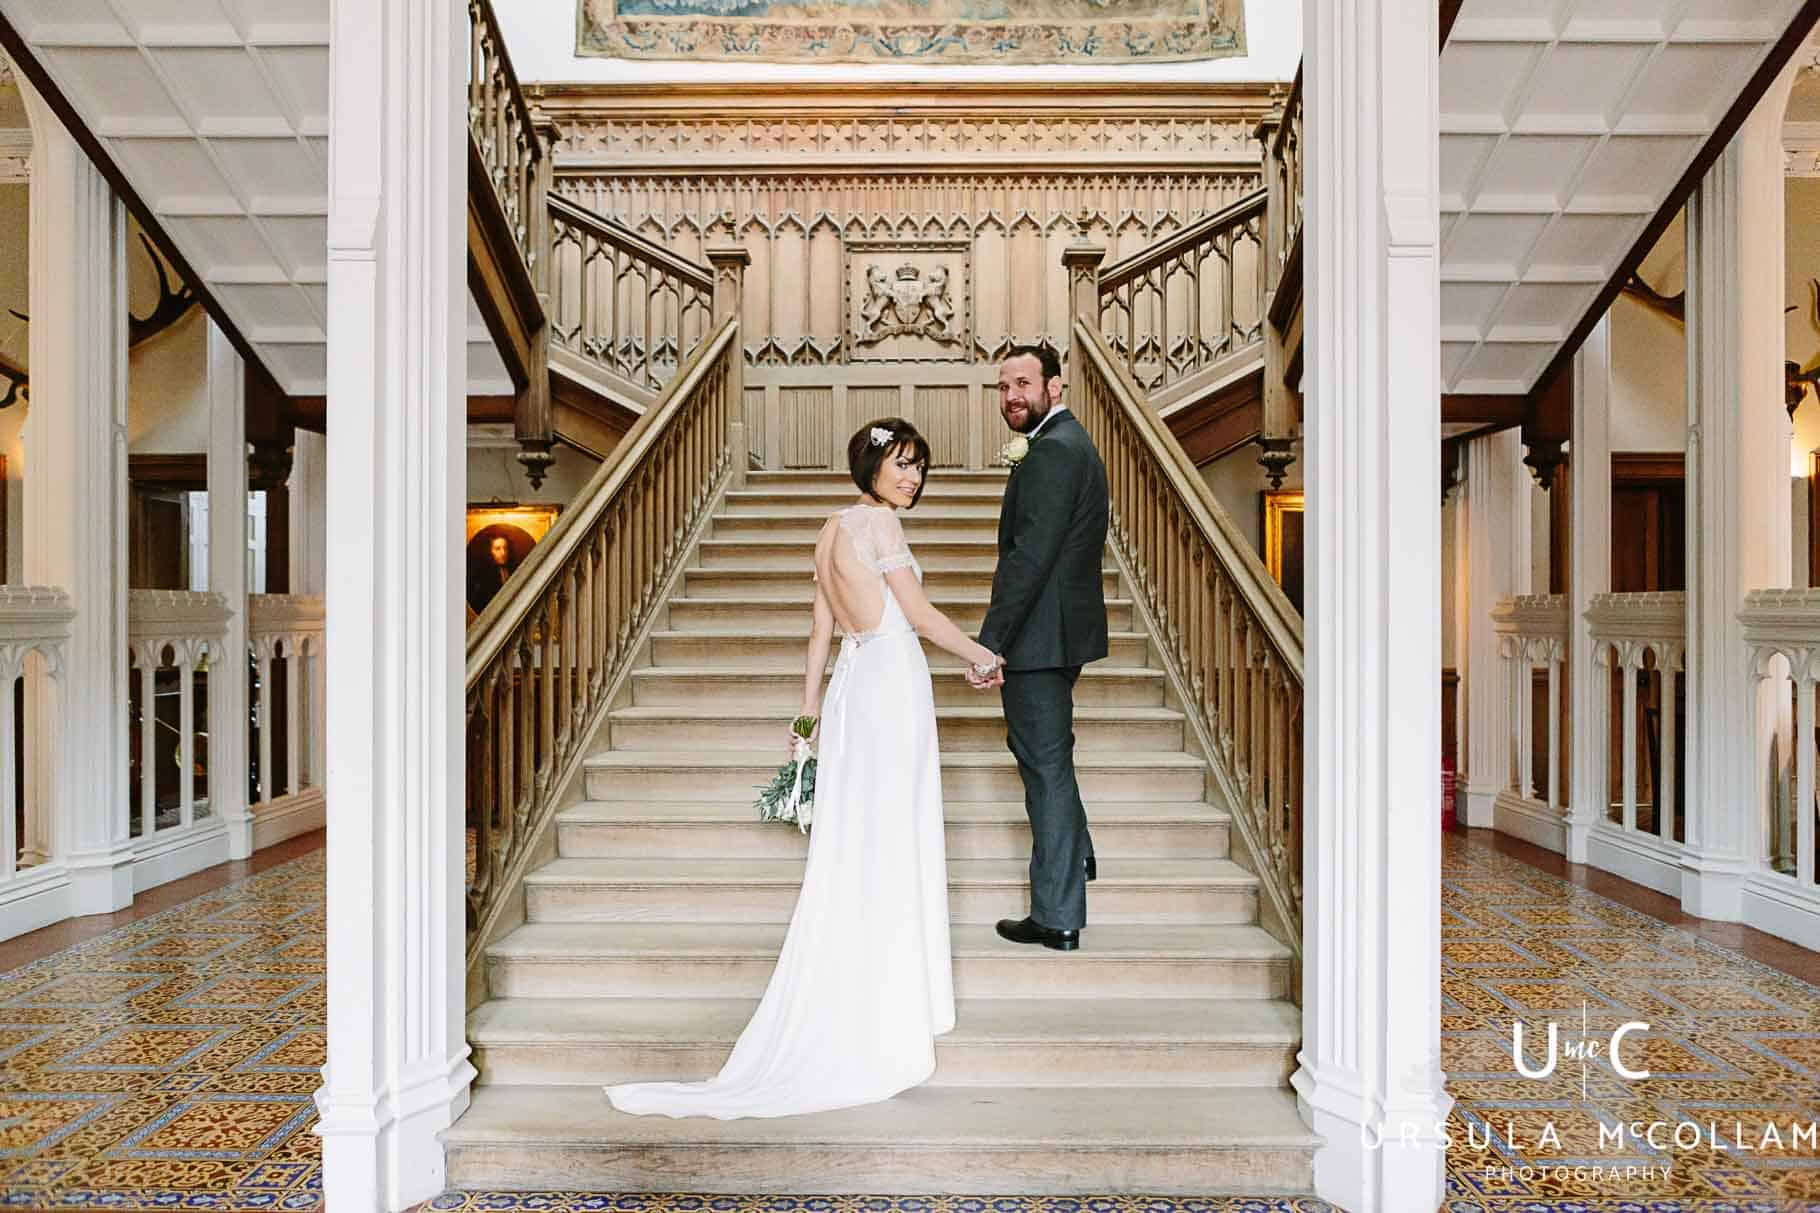 Bride and groom walking up the stairs at Crom Castle